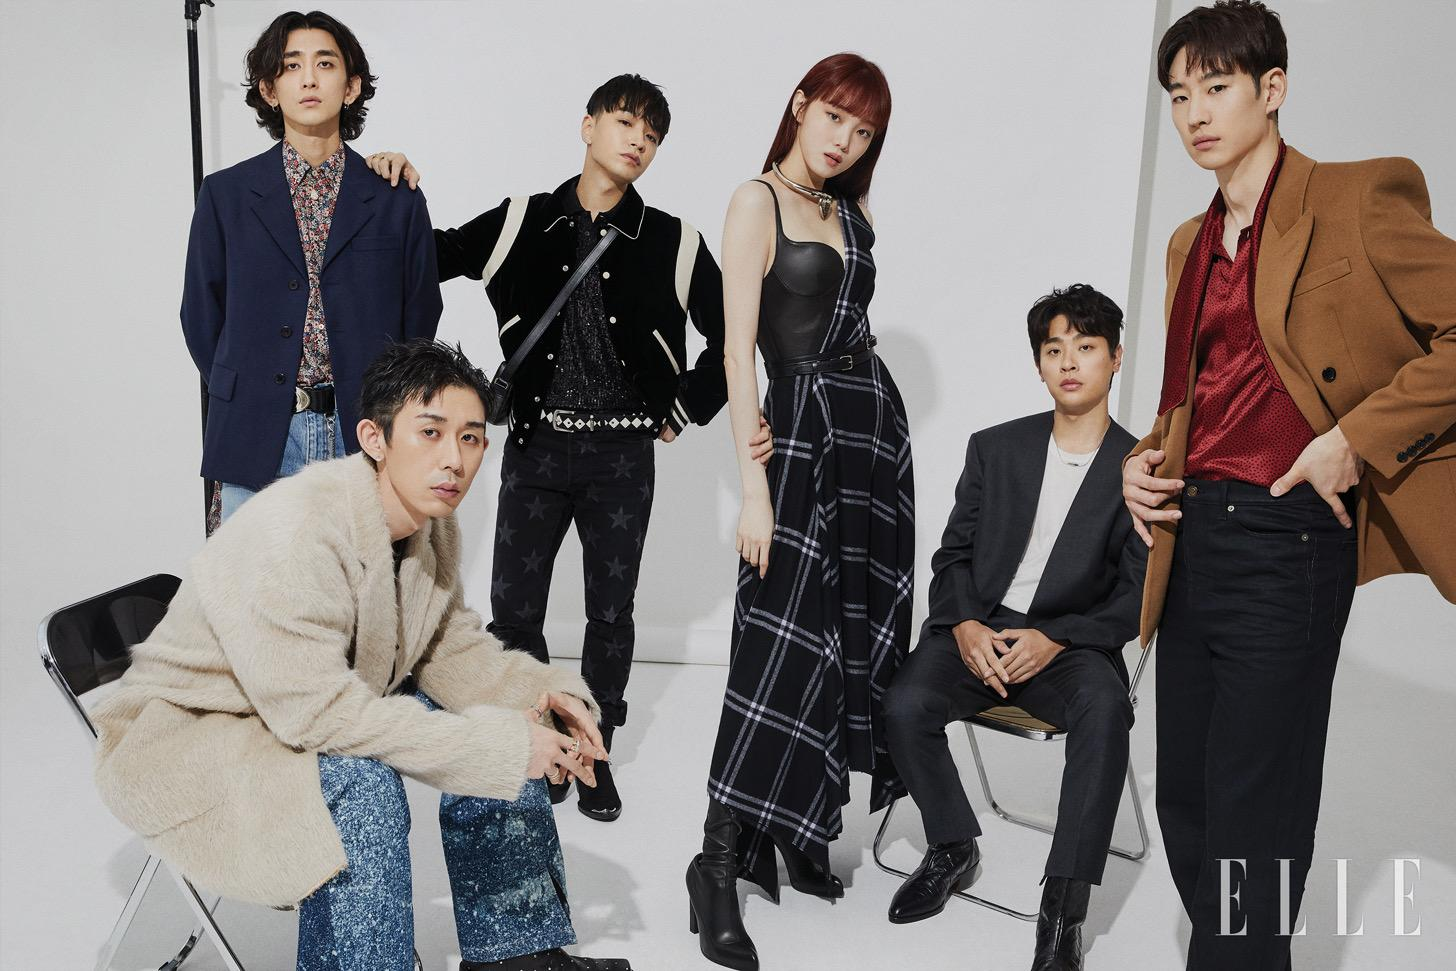 Choi Jung Hoon Simon Dominic Lee Sung Kyung Park Jung Min Lee Je Hoon Code Kunst